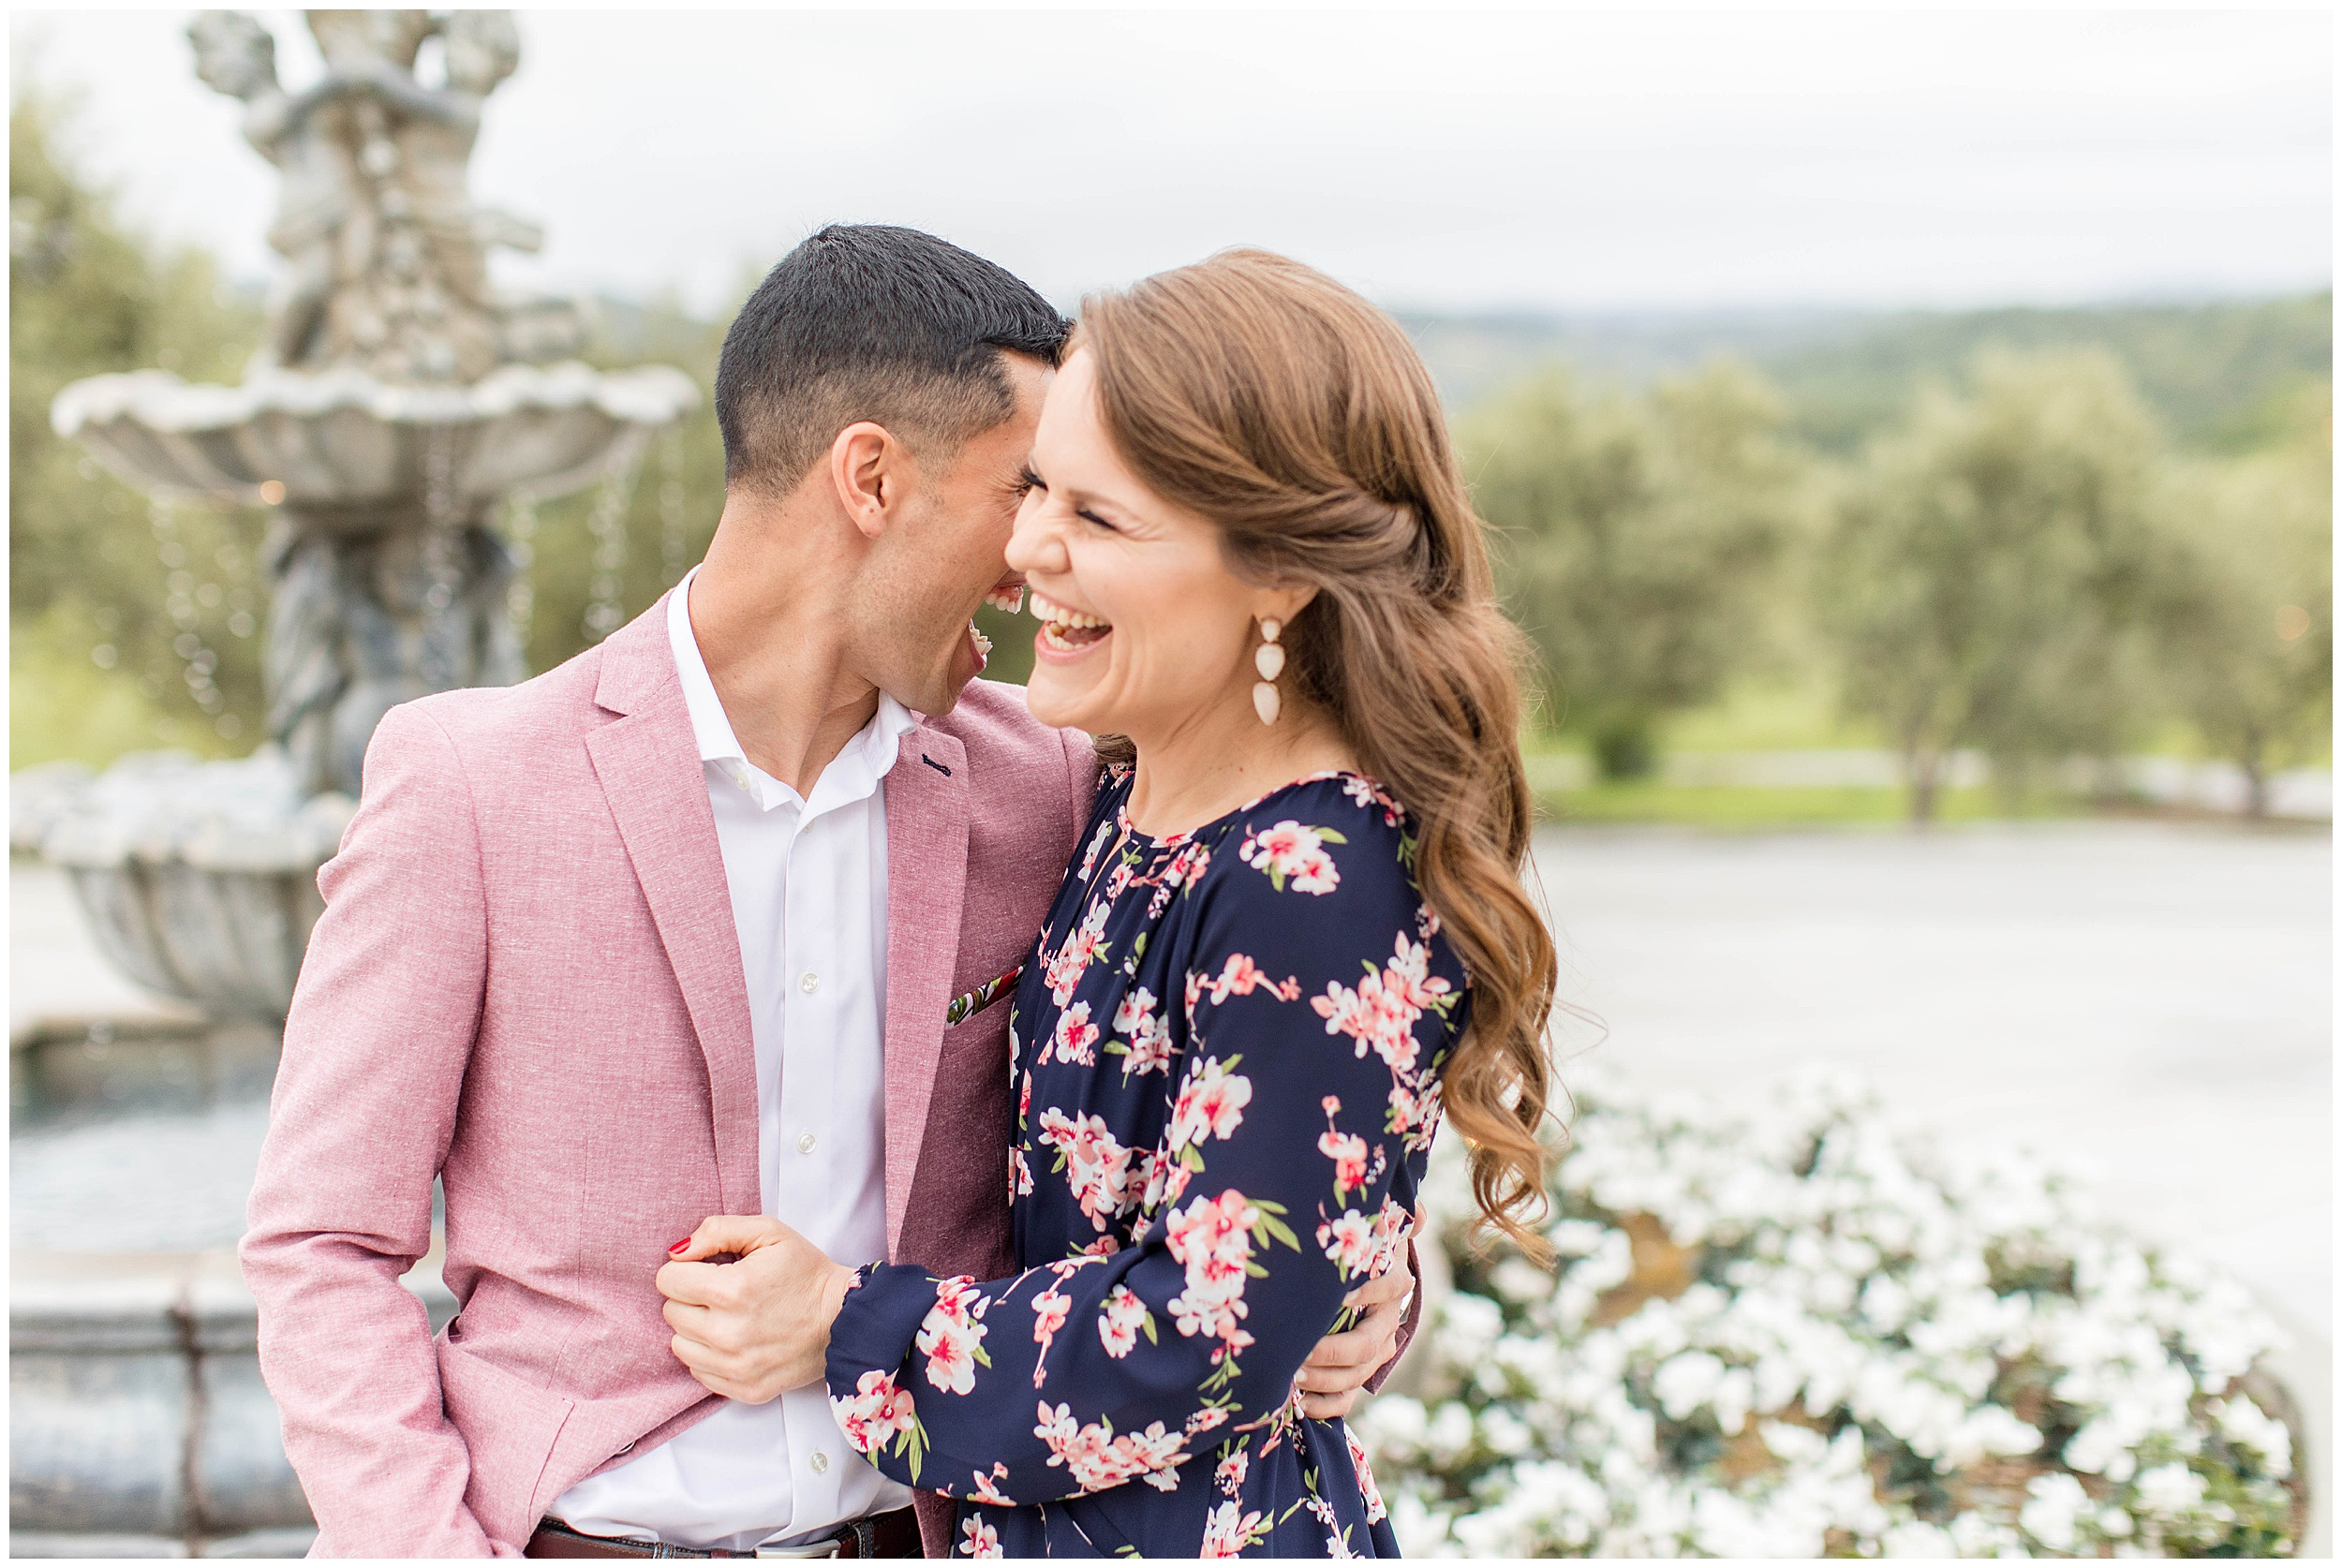 Willow Heights Mansion-San Jose Wedding Photographer-Engagement Session-Angela Sue Photography_0003.jpg